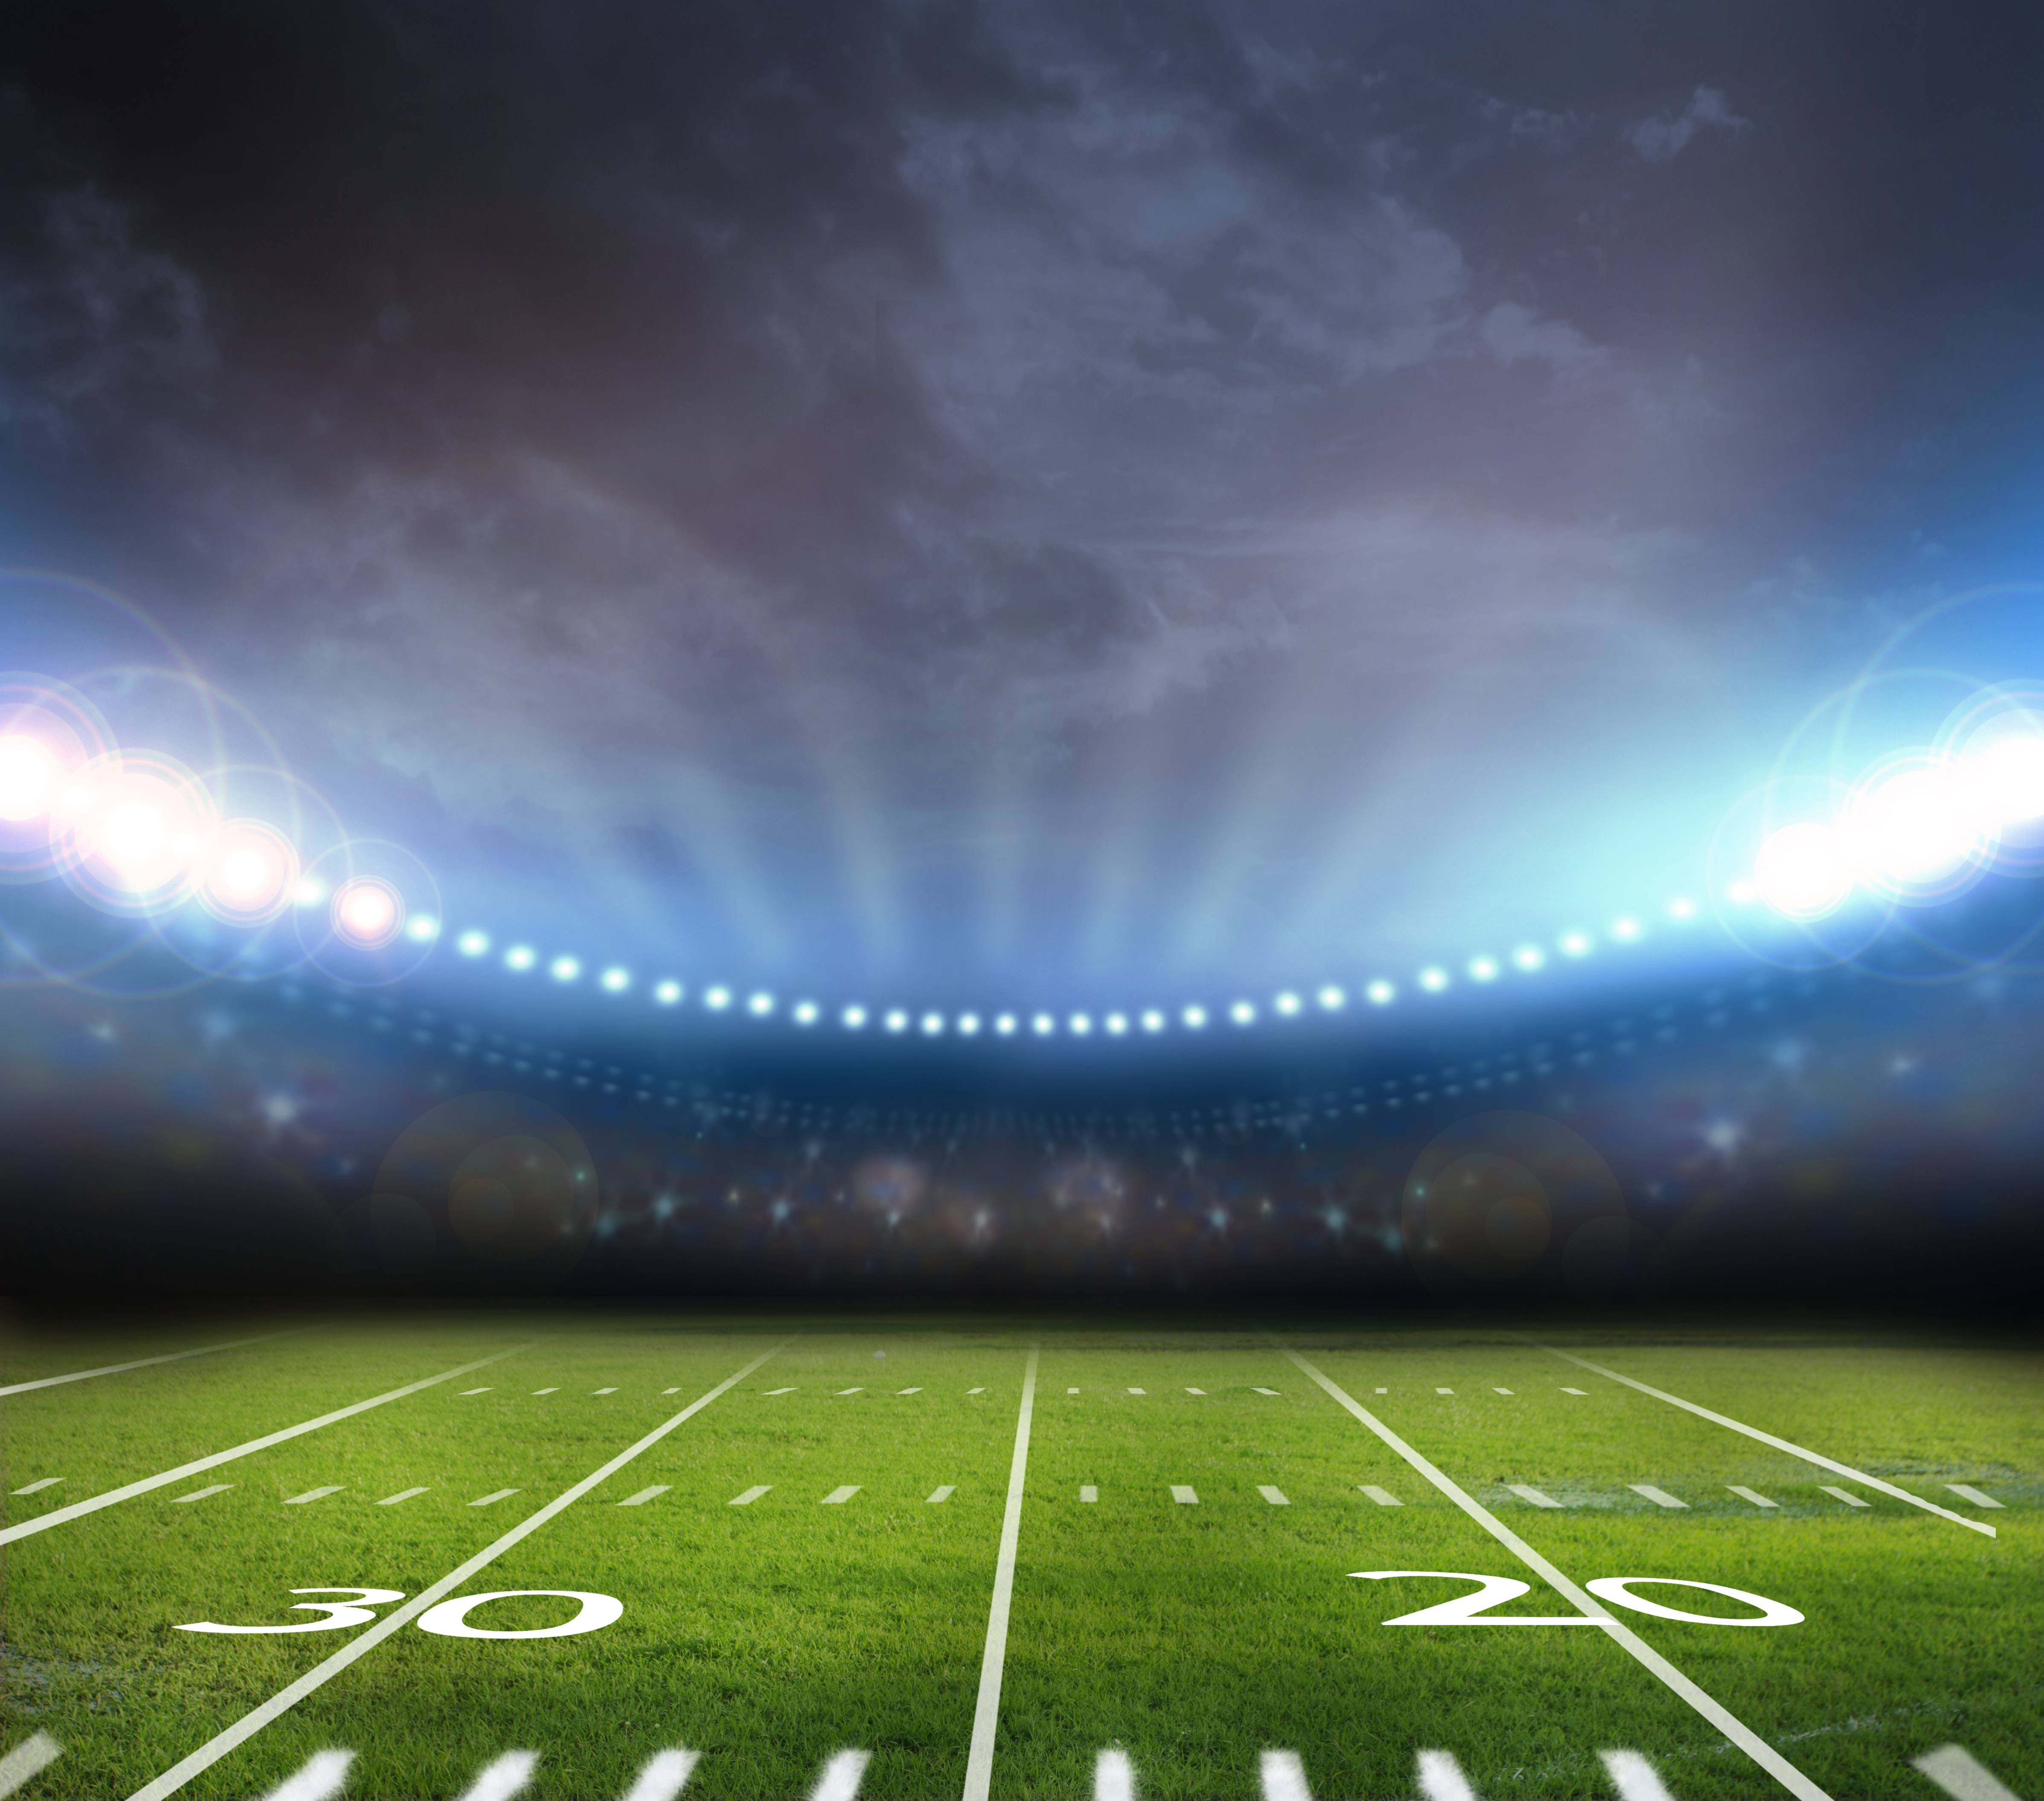 Football Stadium Backgrounds 4791x4222